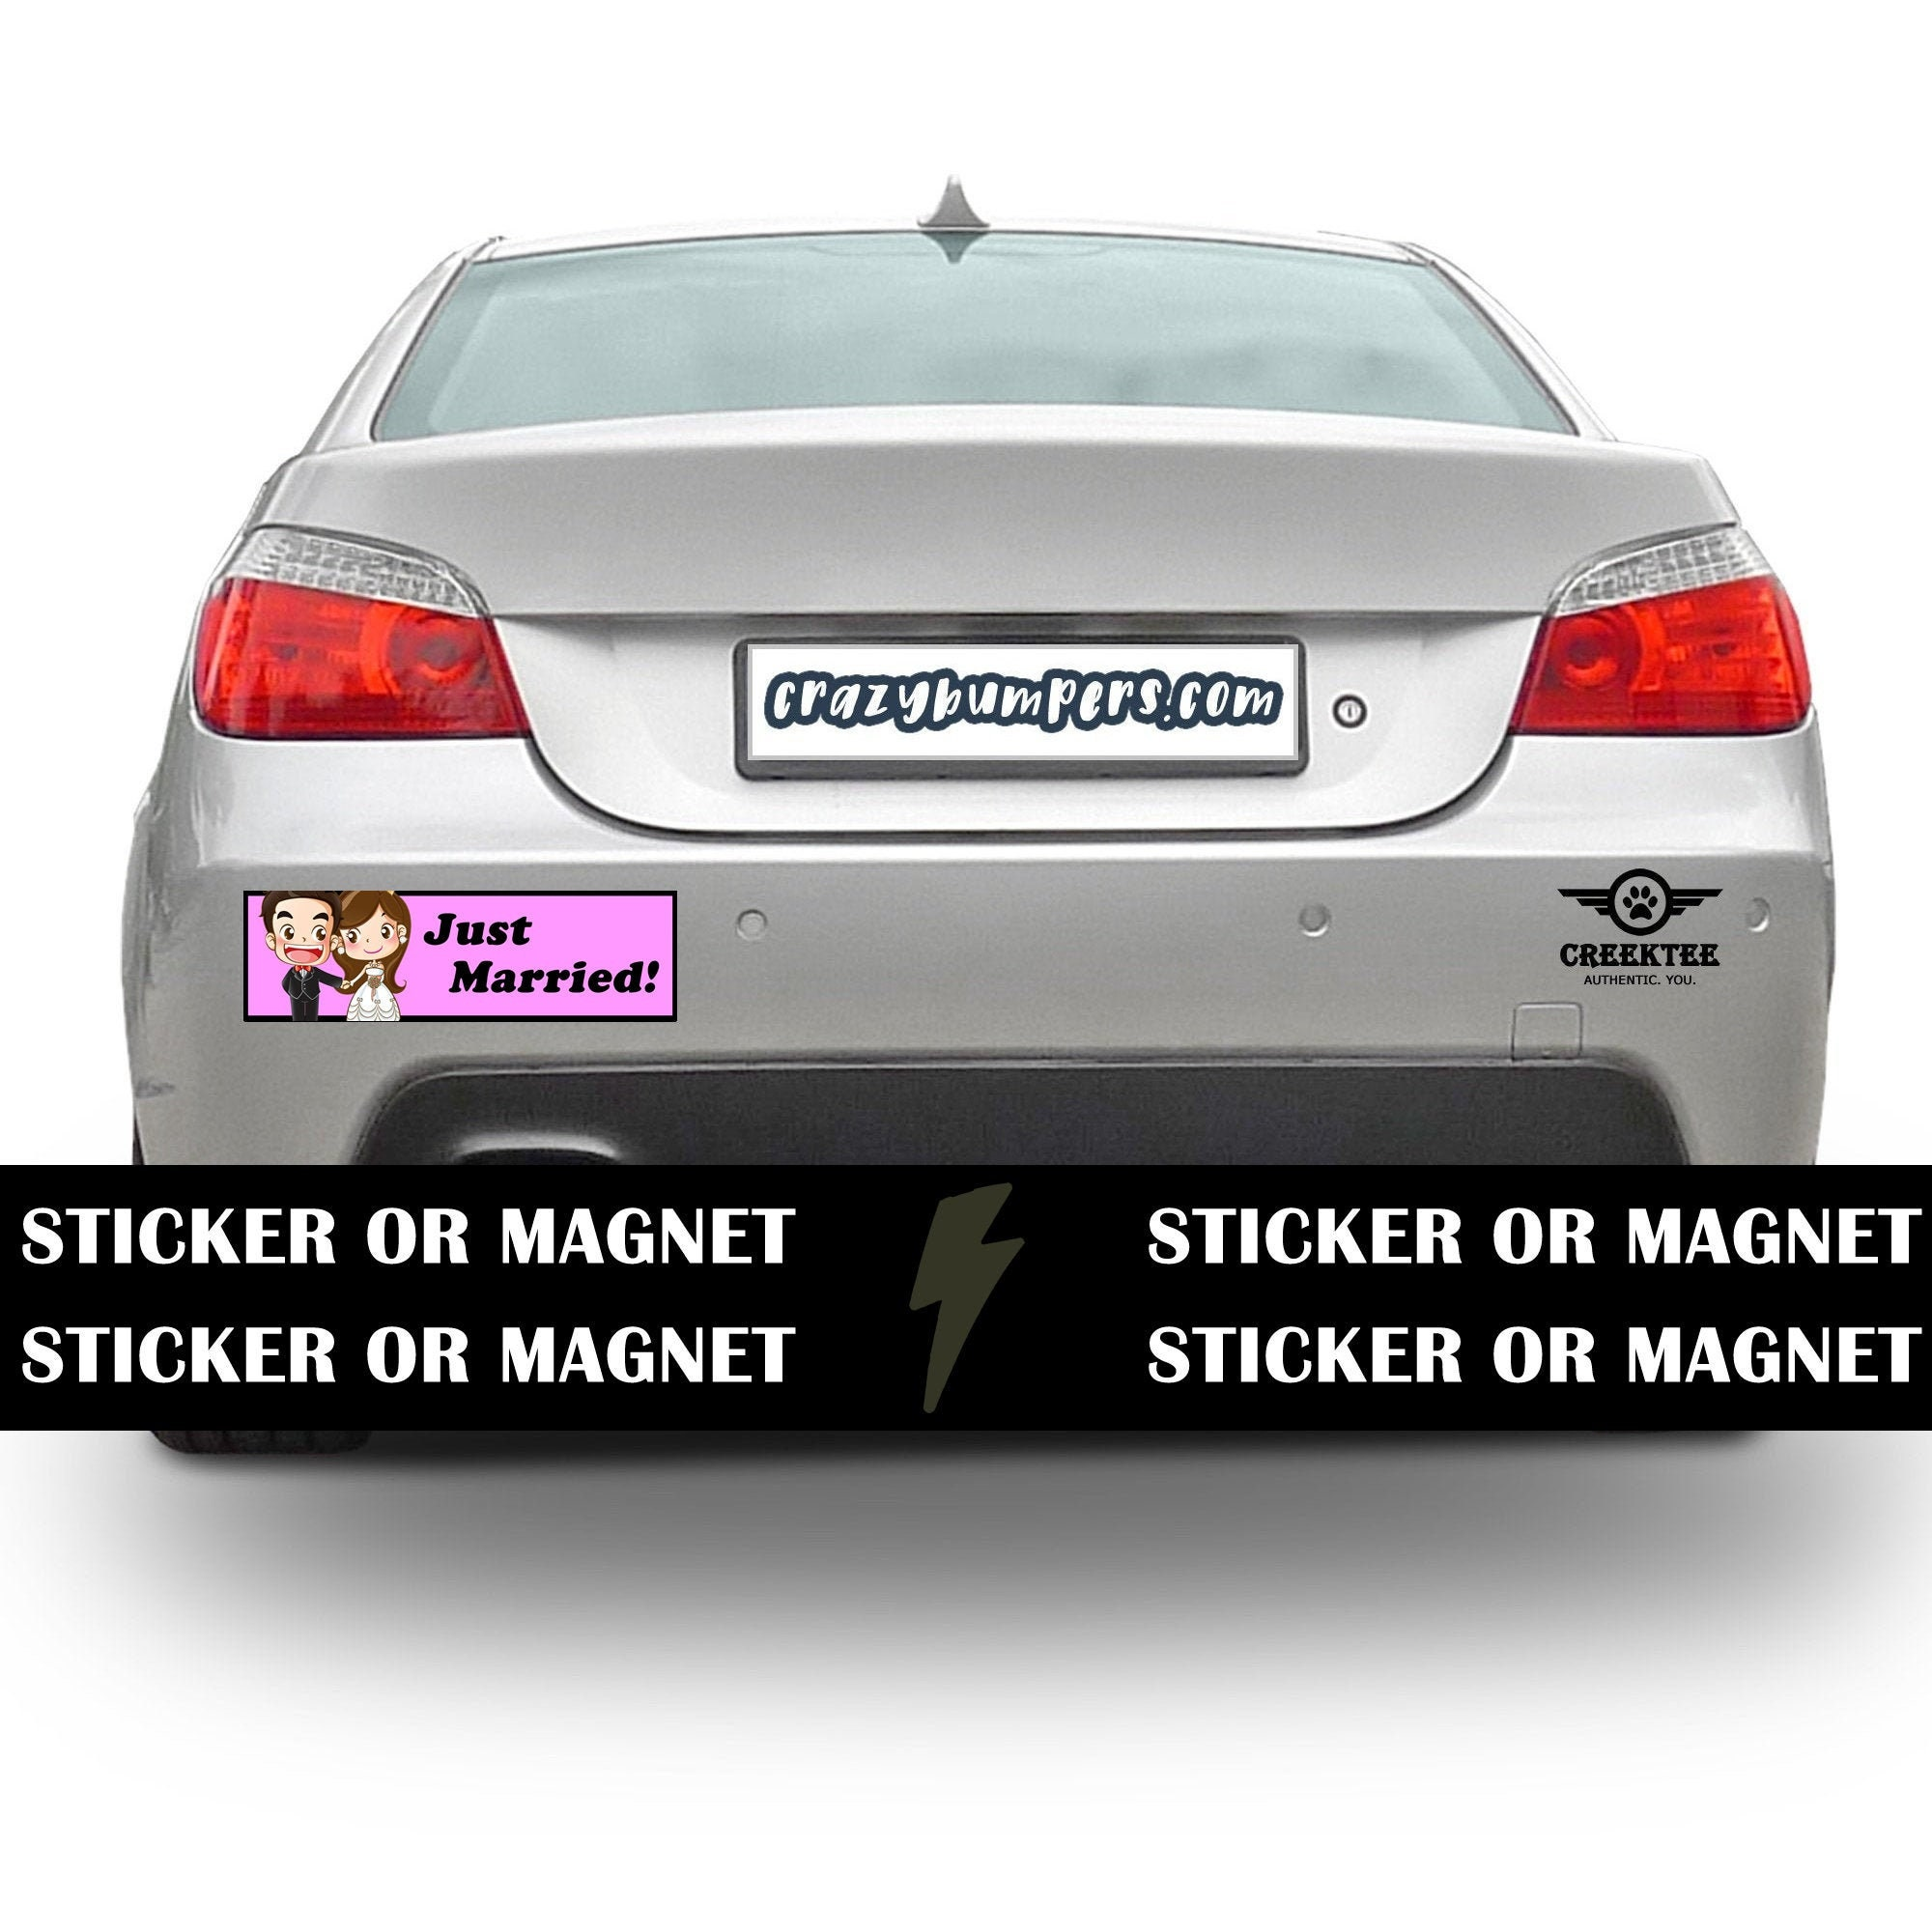 CAD$7.99 - Just Married Bumper Sticker 10 x 3 Bumper Sticker or Magnetic Bumper Sticker Available - Custom changes and orders welcomed!